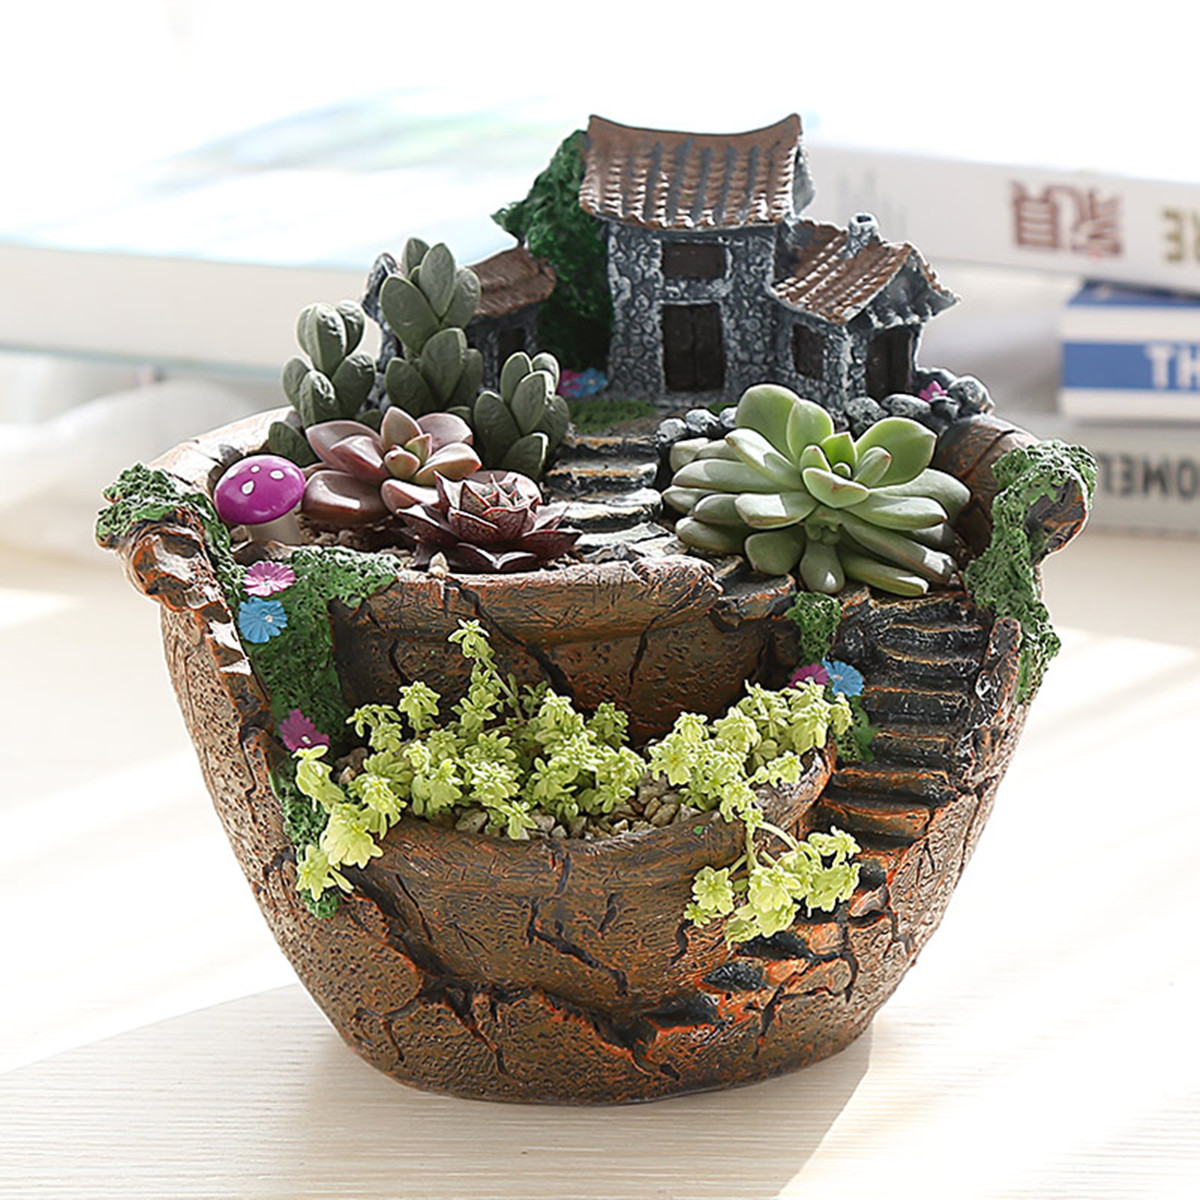 Sky Garden Planter Herb Flower Cactus Succulent Clay Pot